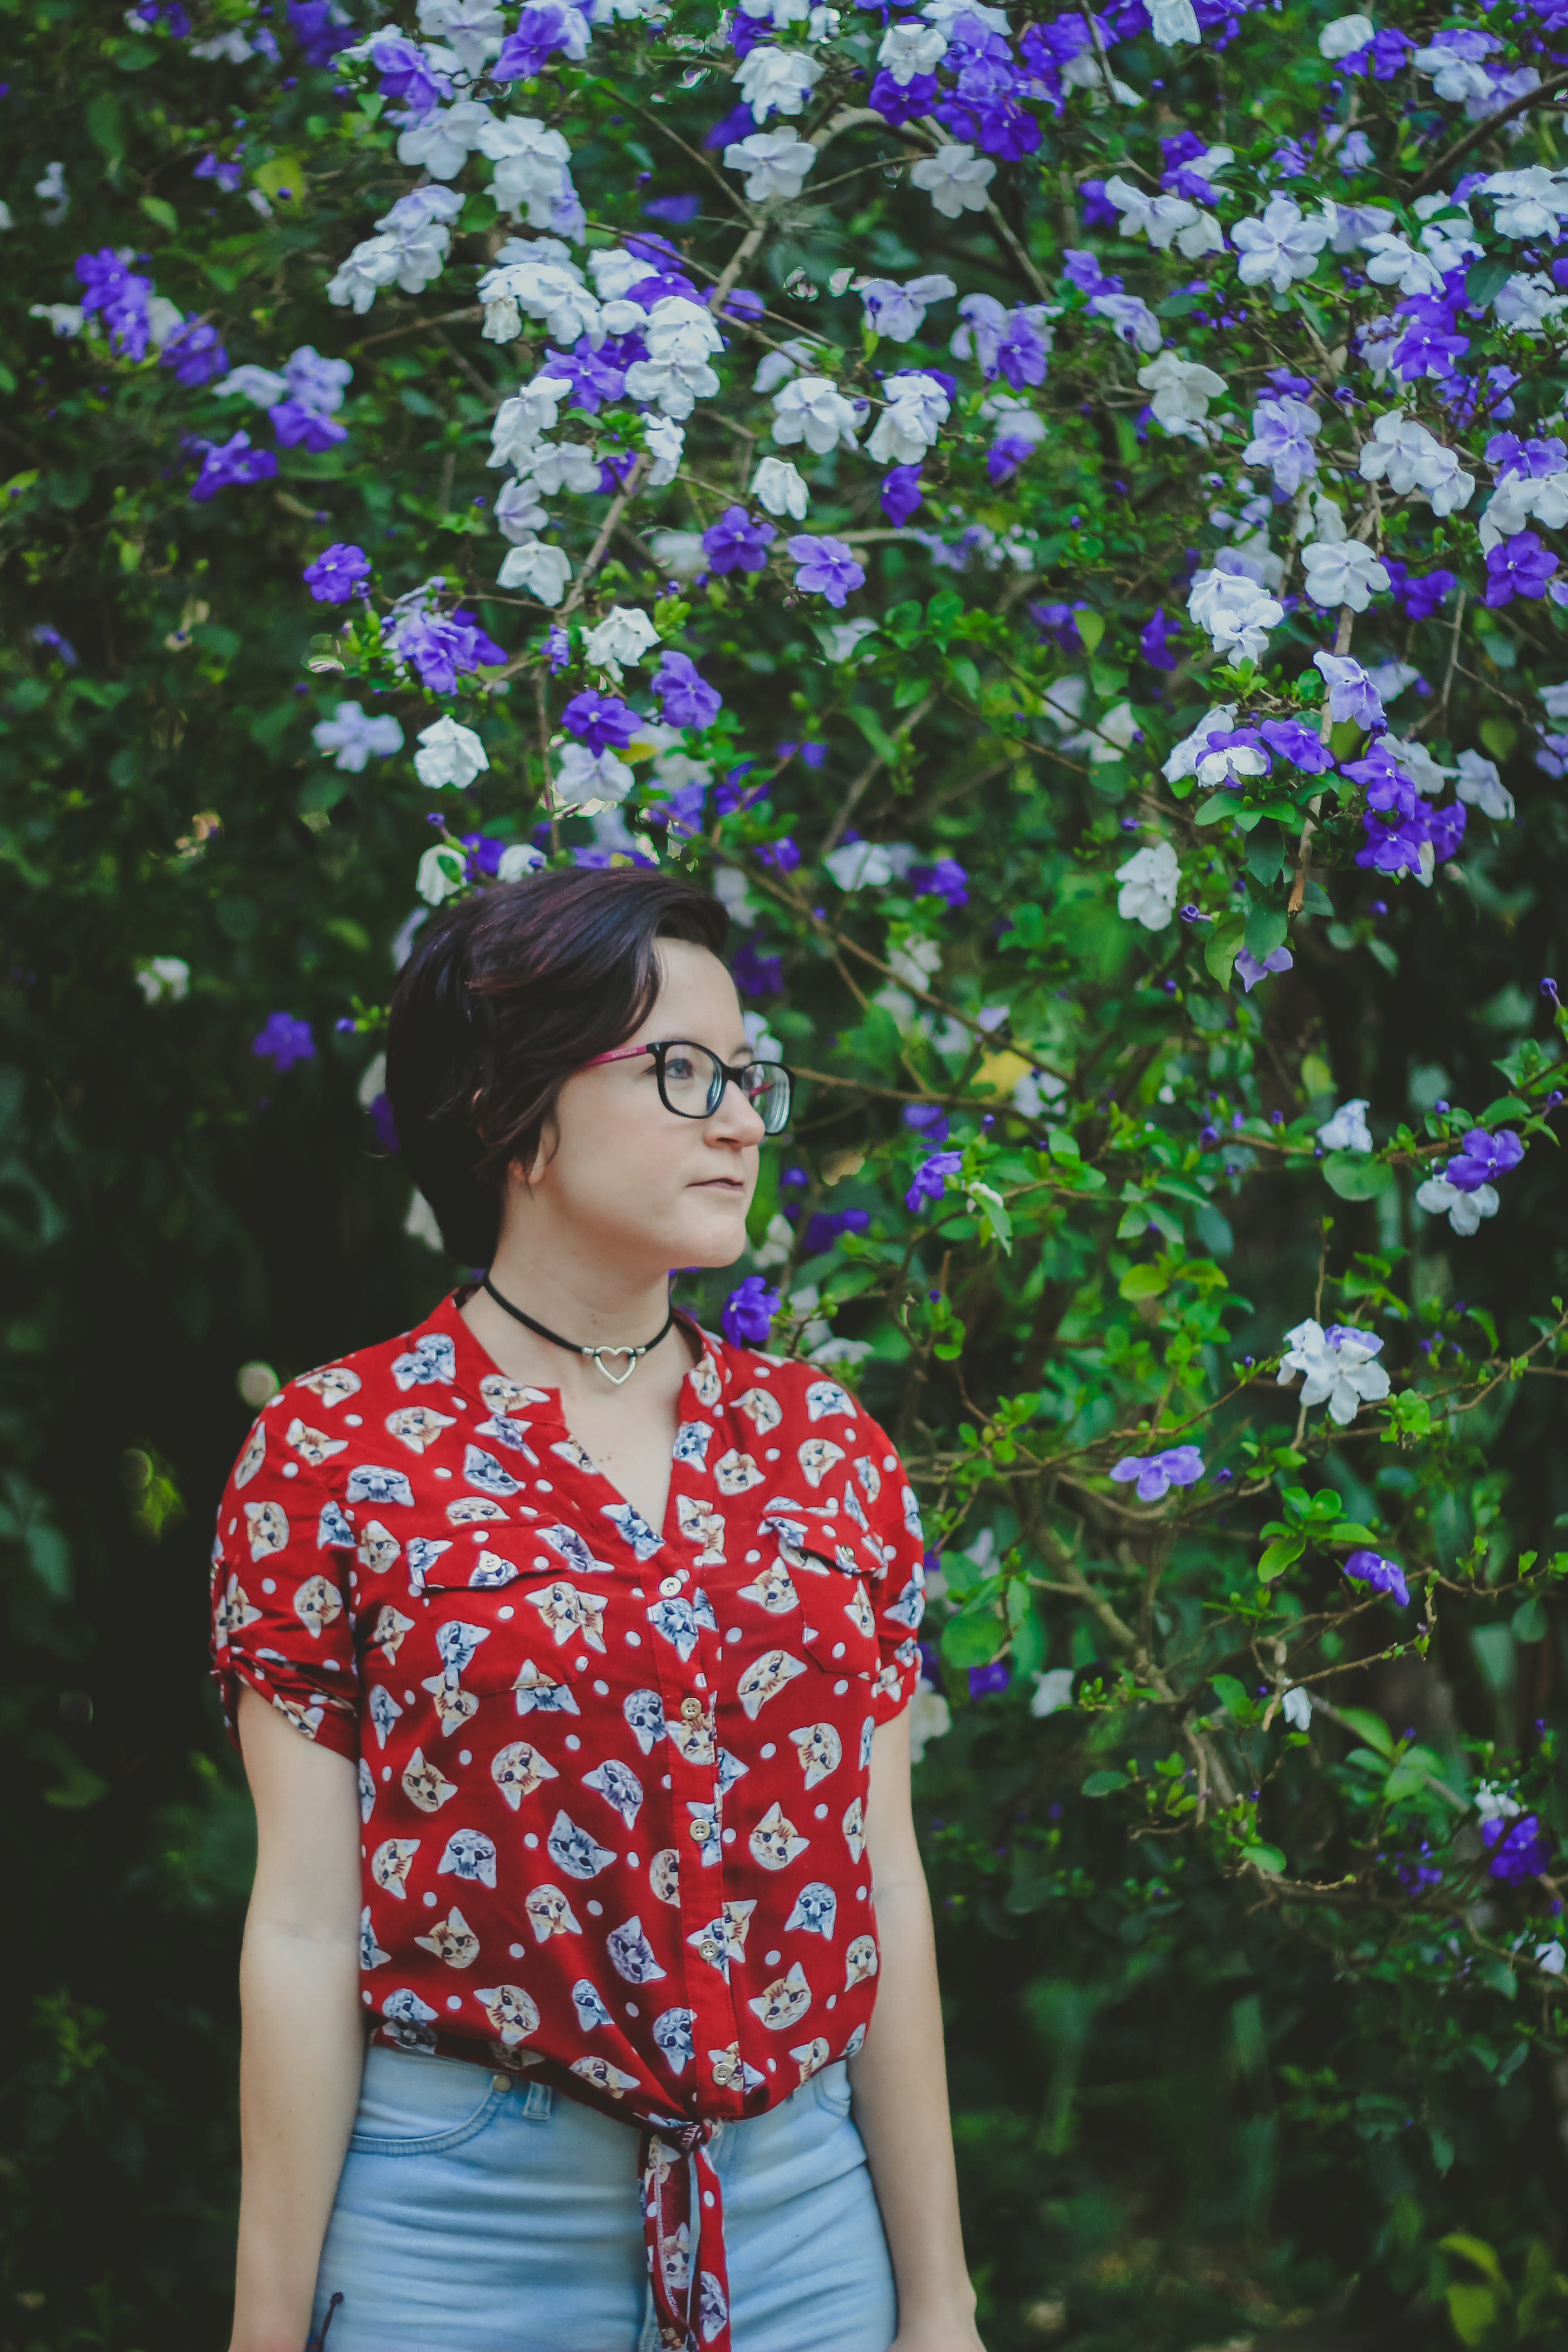 Woman Wearing Red and Blue Shirt Standing Beside Purple and White Flowers